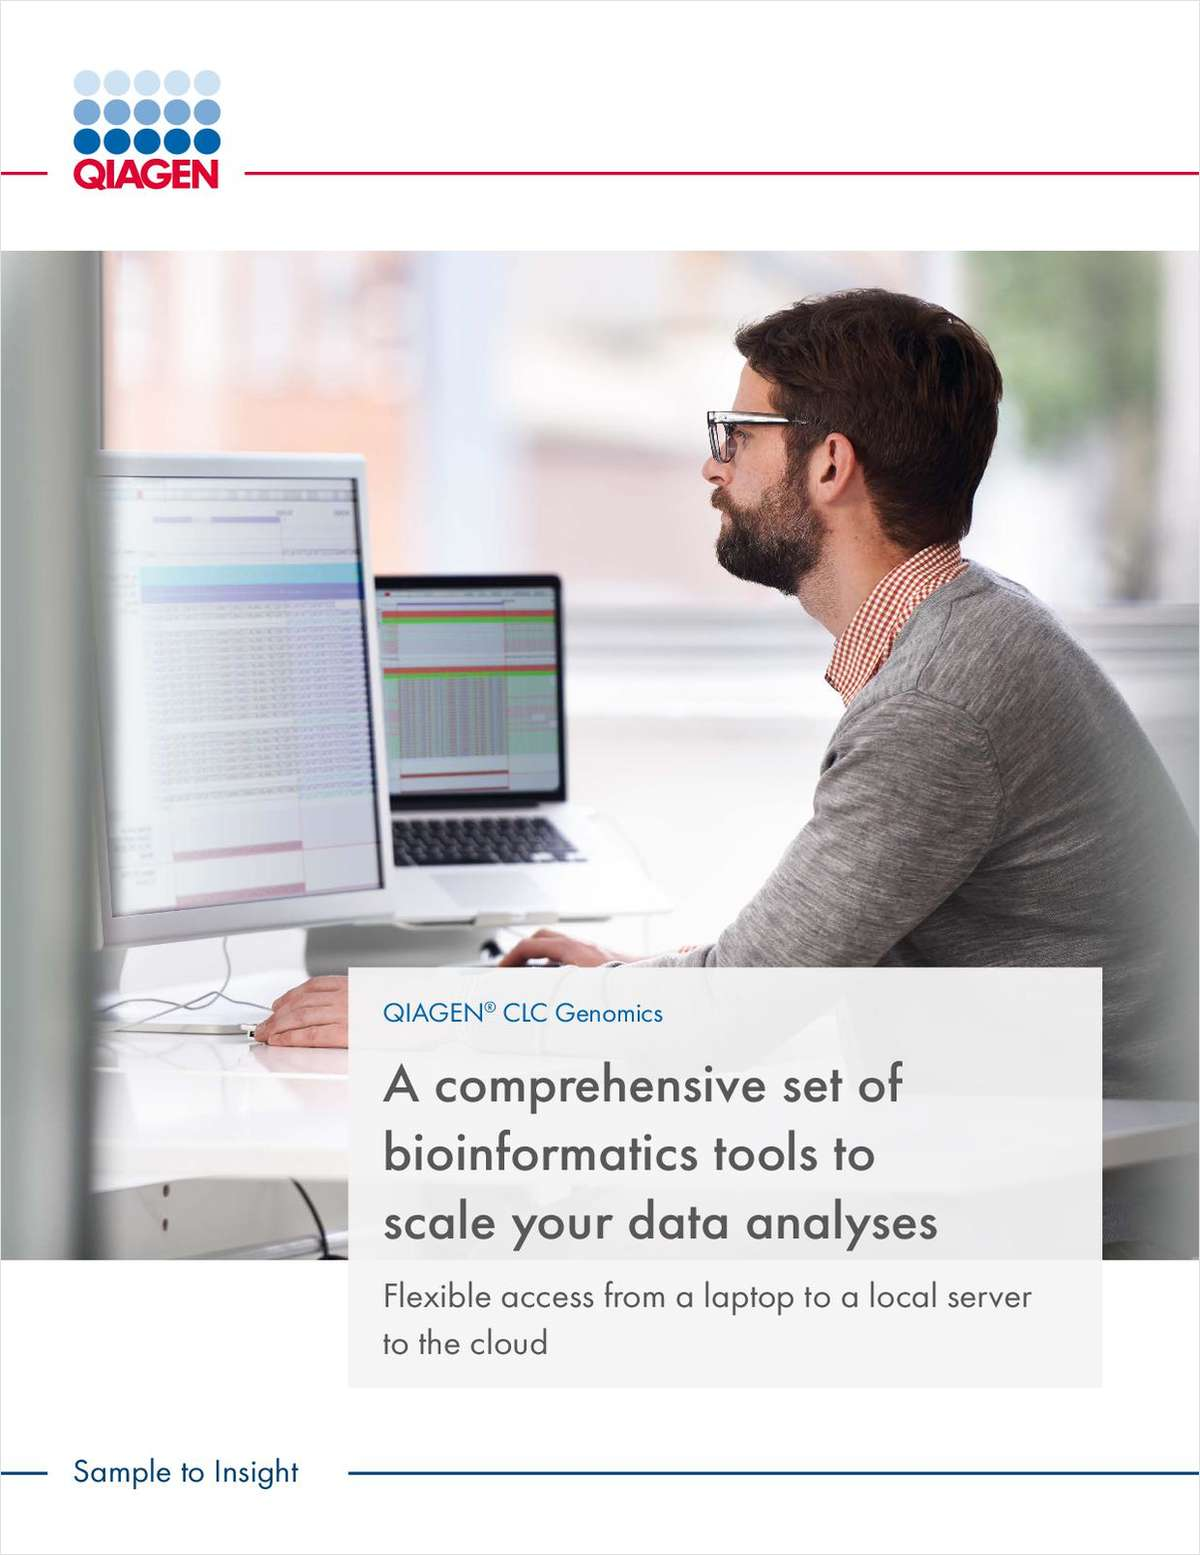 A Comprehensive Set of Bioinformatics Tools to Scale Data Analyses